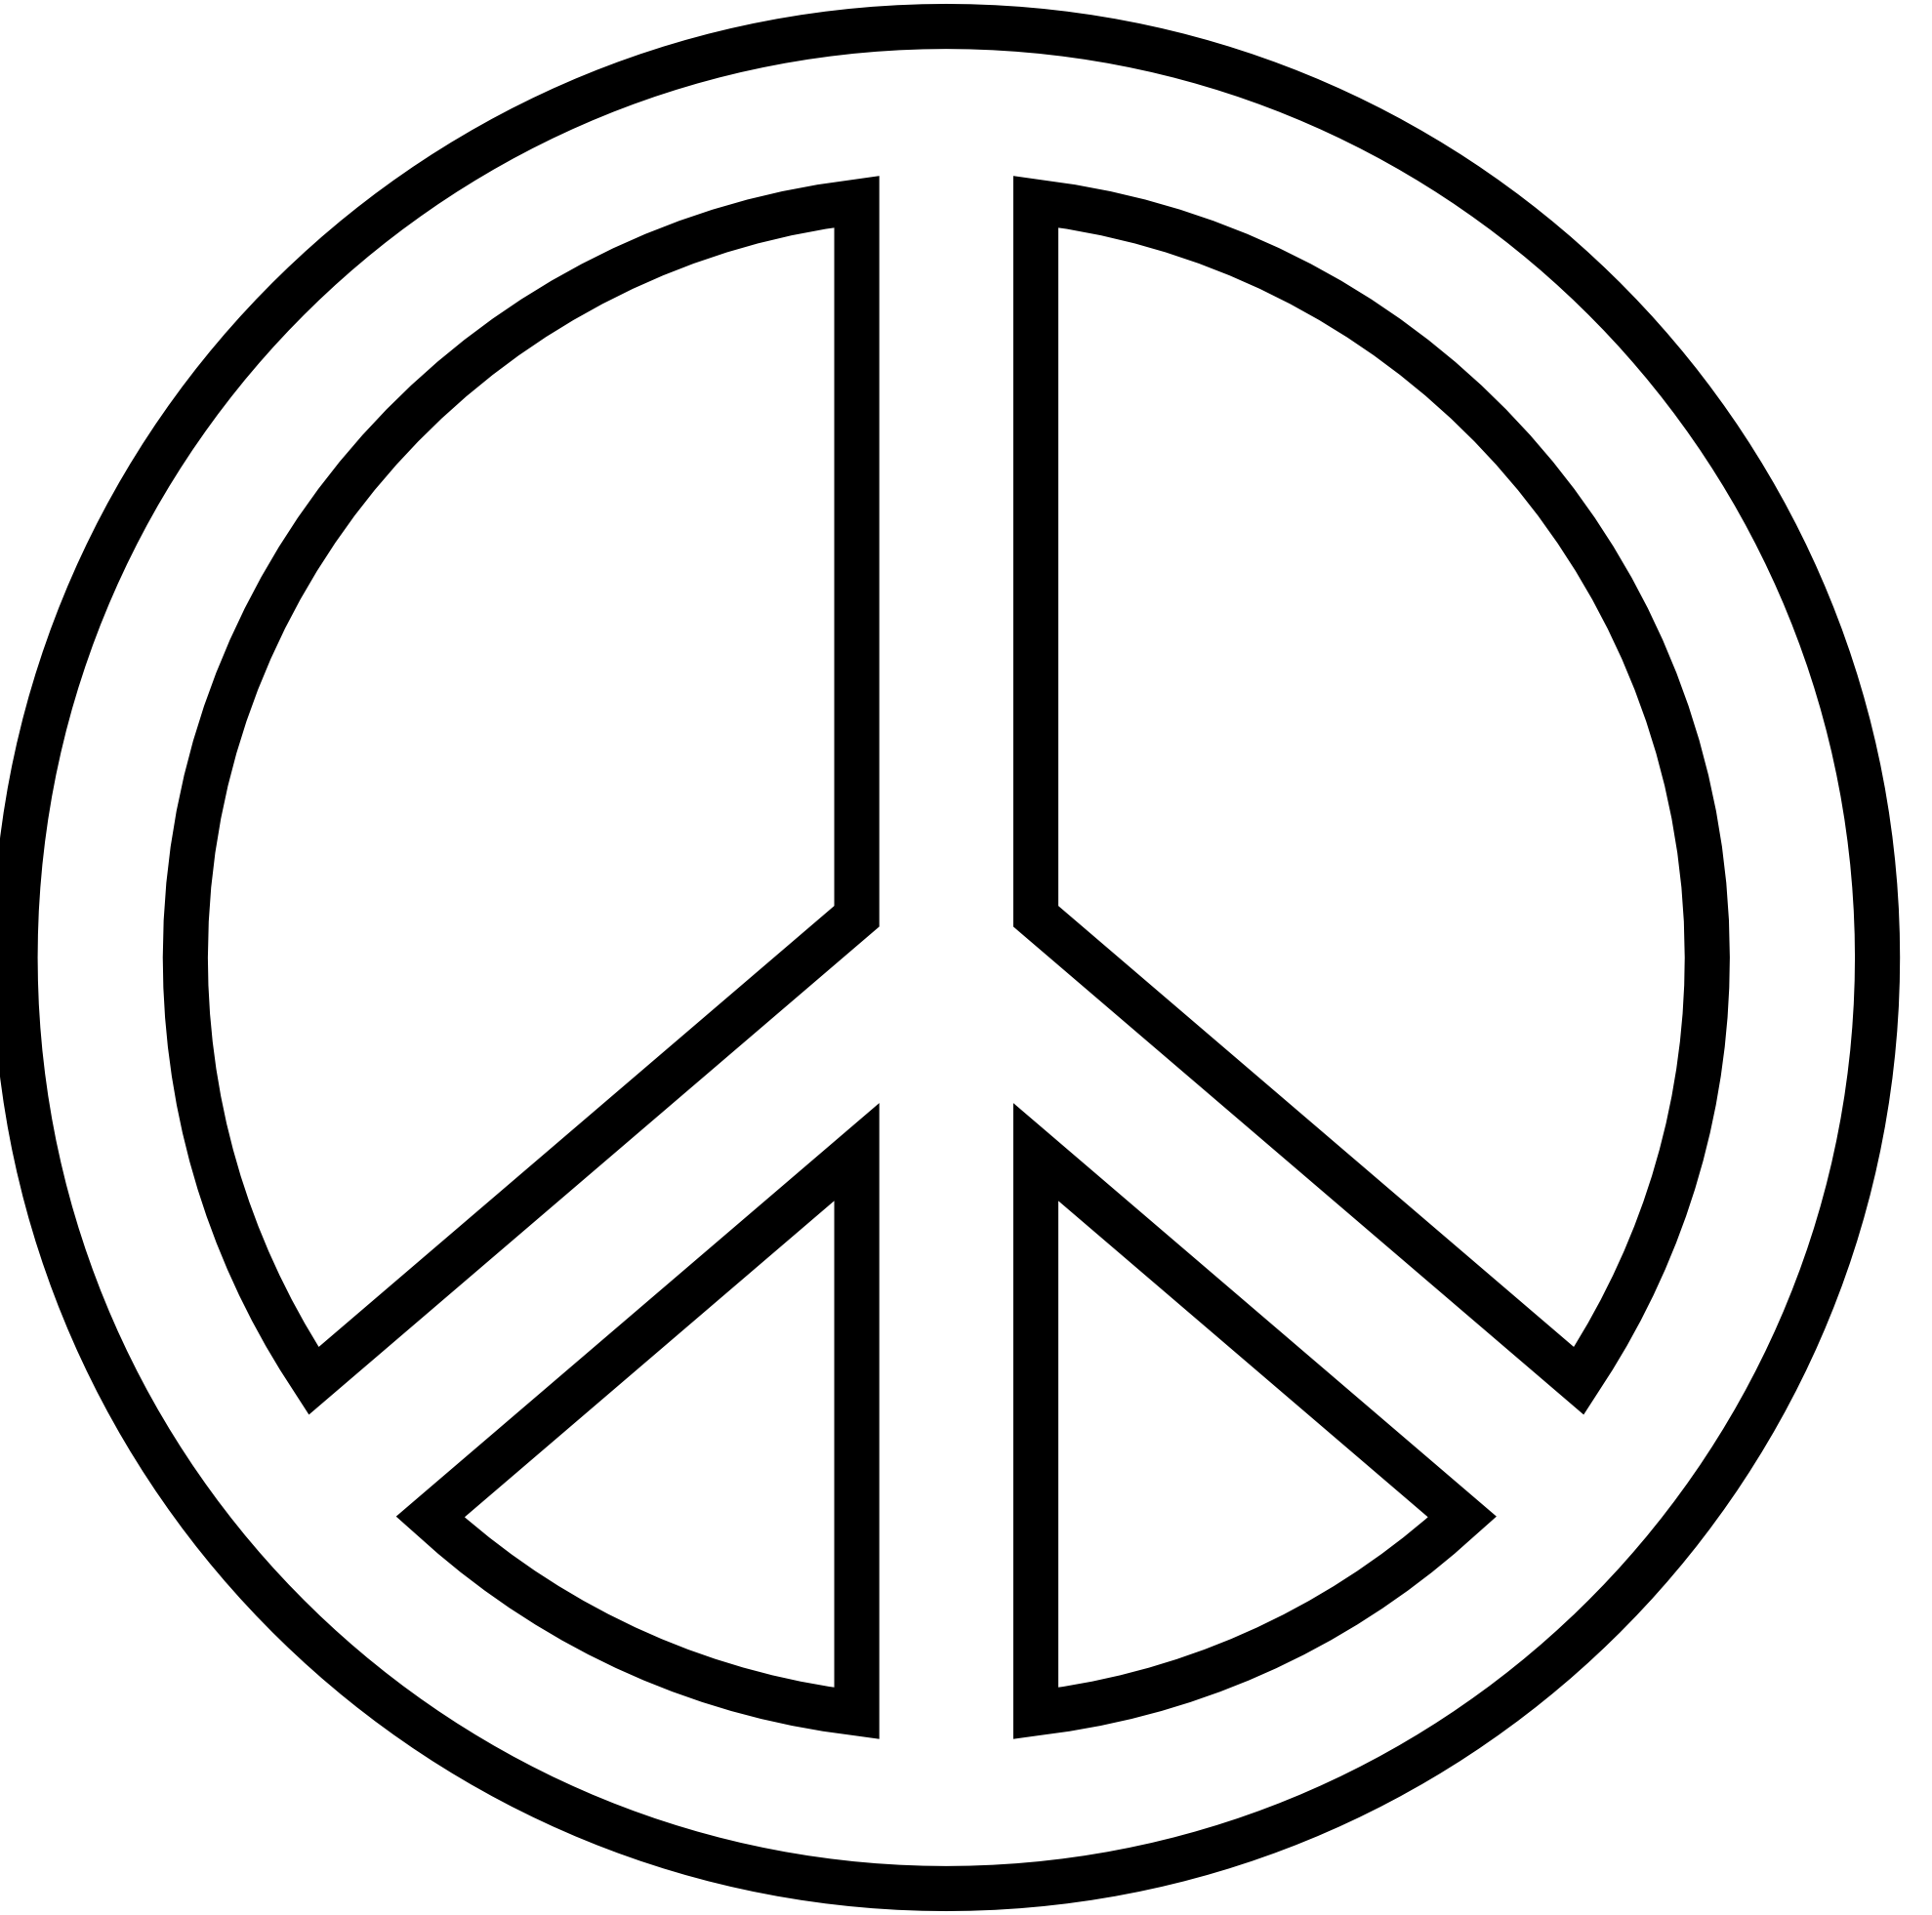 File: Peace-Full HD Quality.jpg | Antone Stackpole